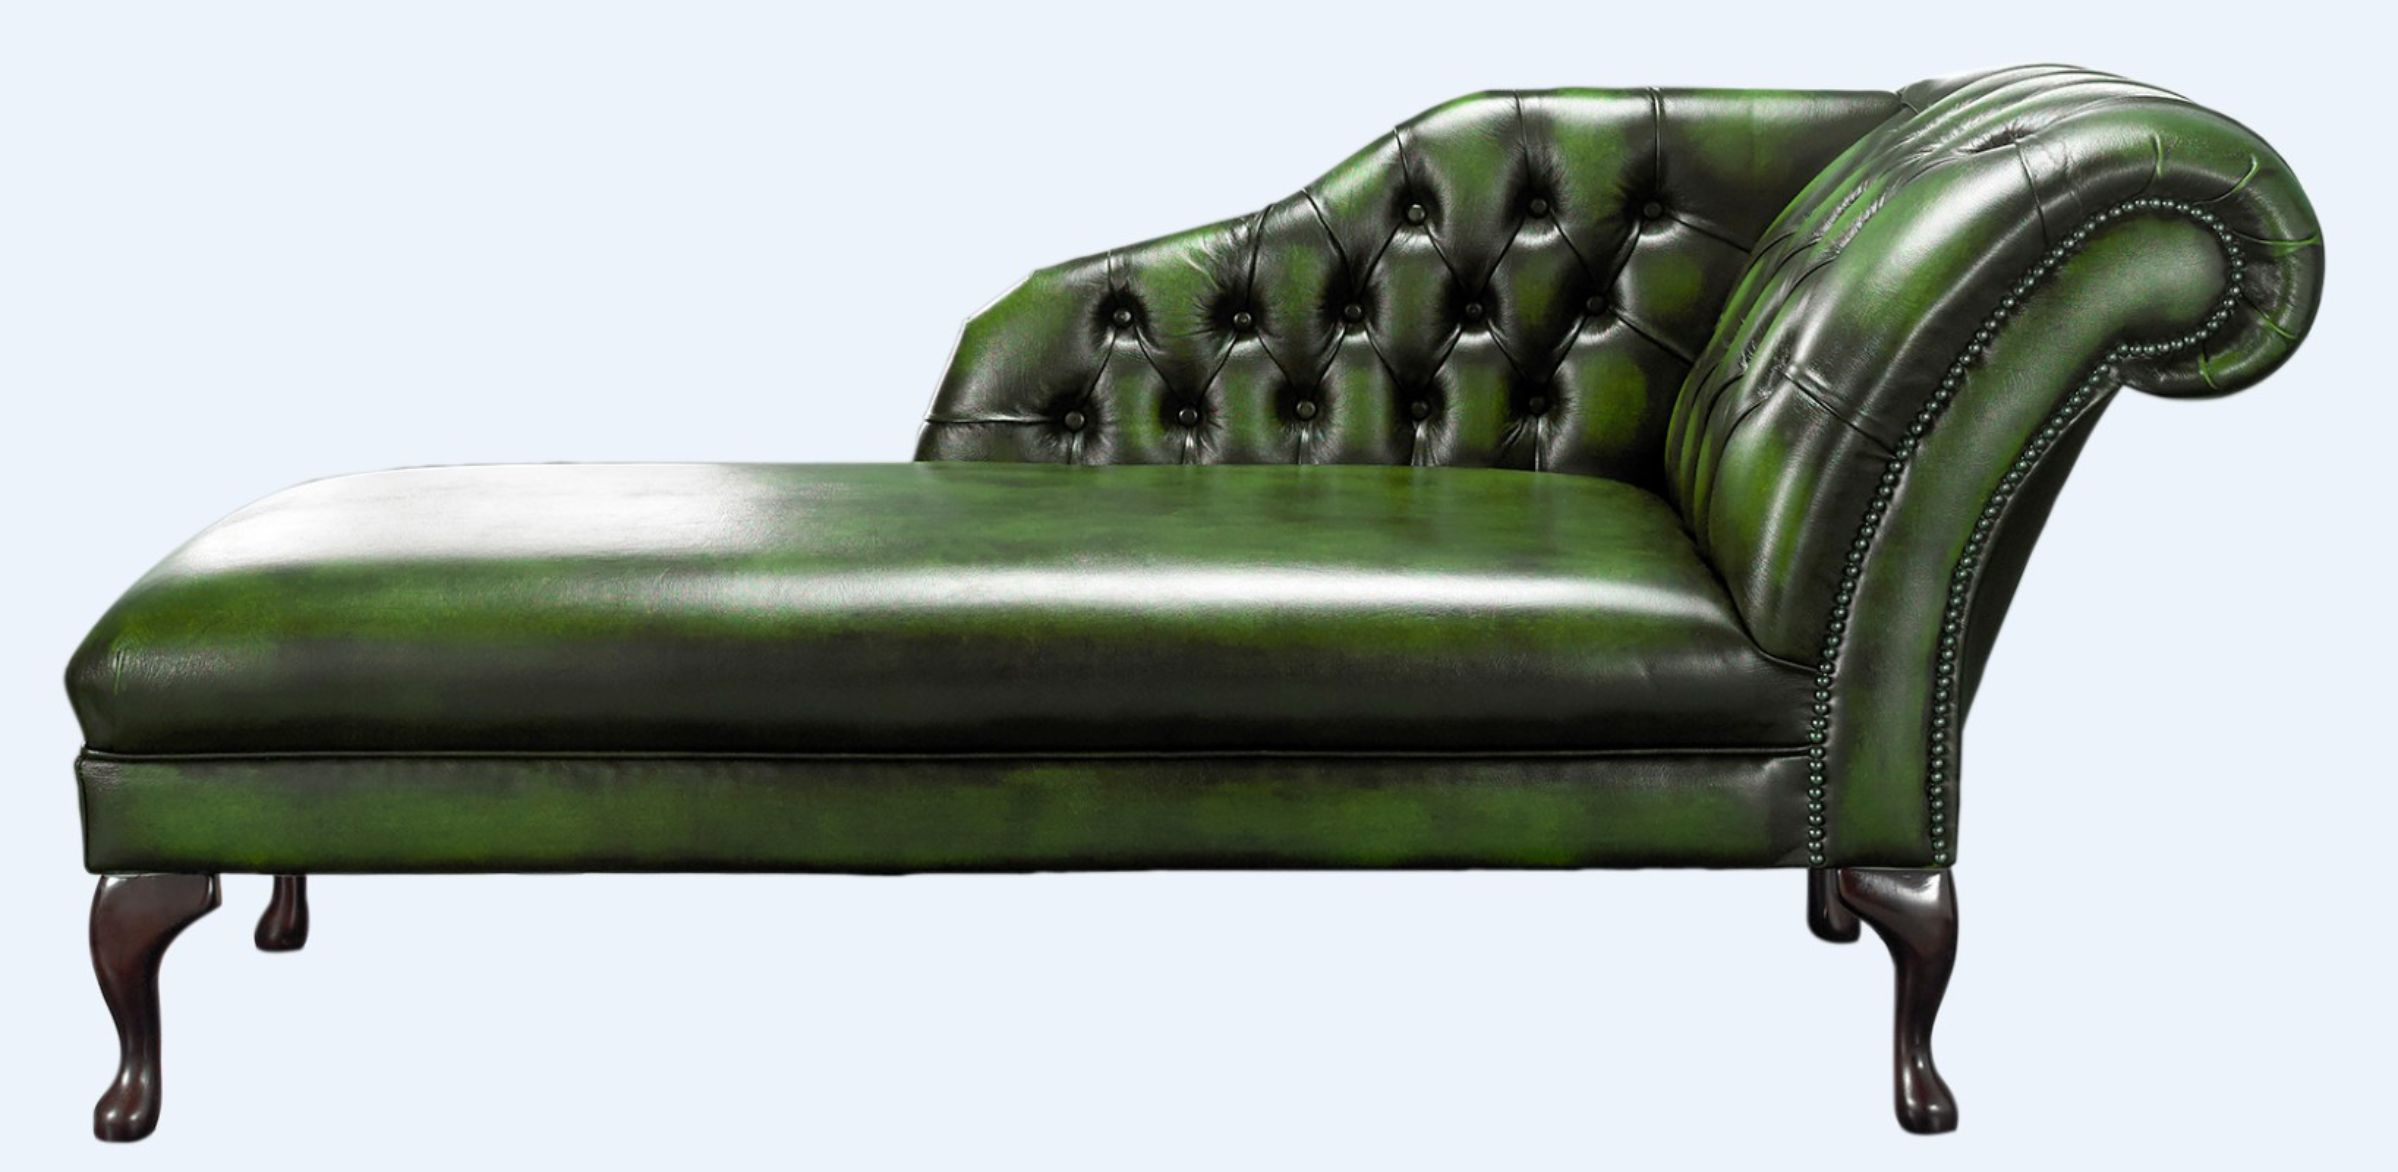 Sofa 2 Chaise Lounge